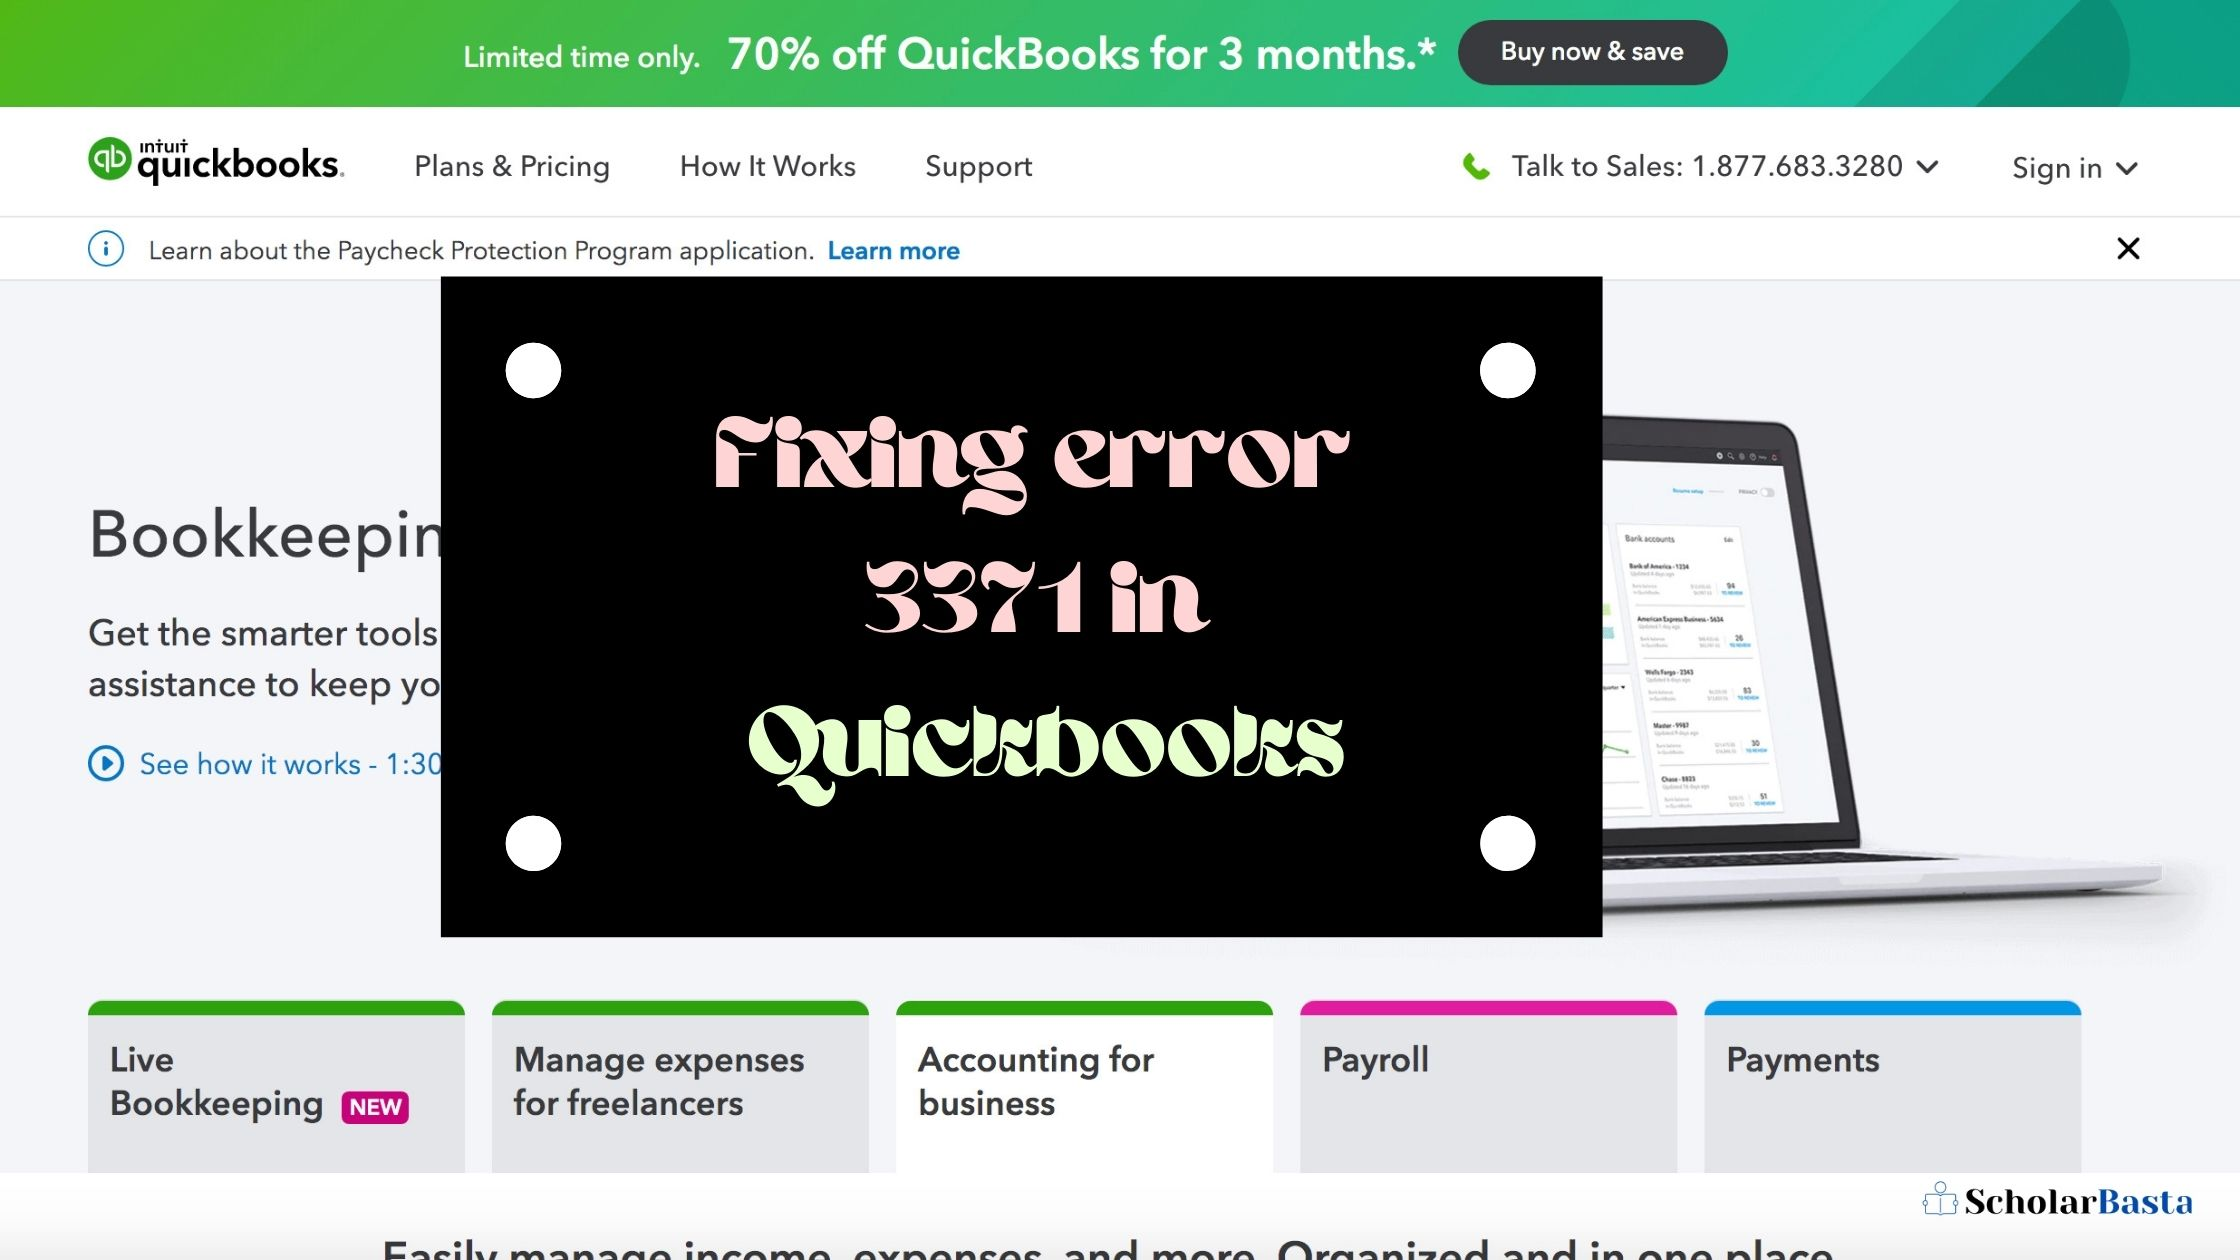 Fixing error 3371 in Quickbooks